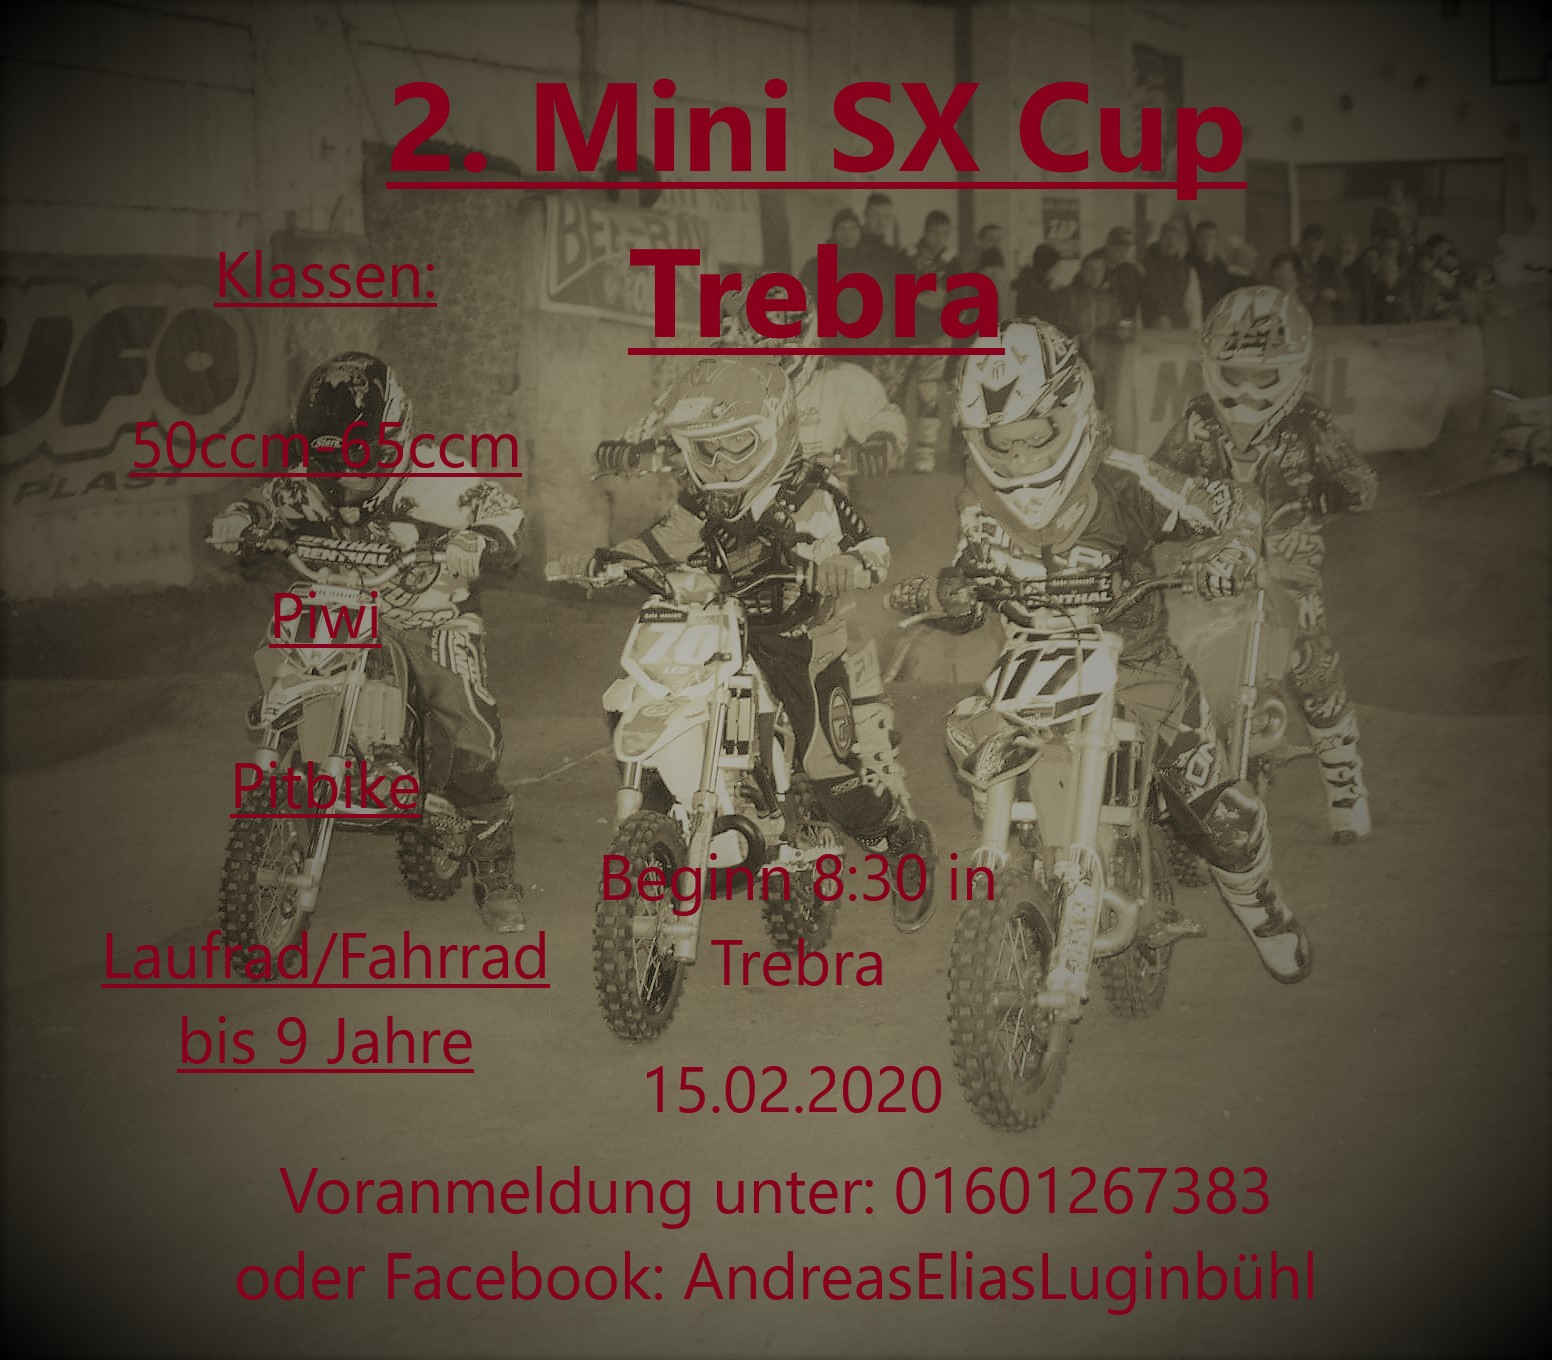 Mini SX Cup in Trebra am 15.02.2020